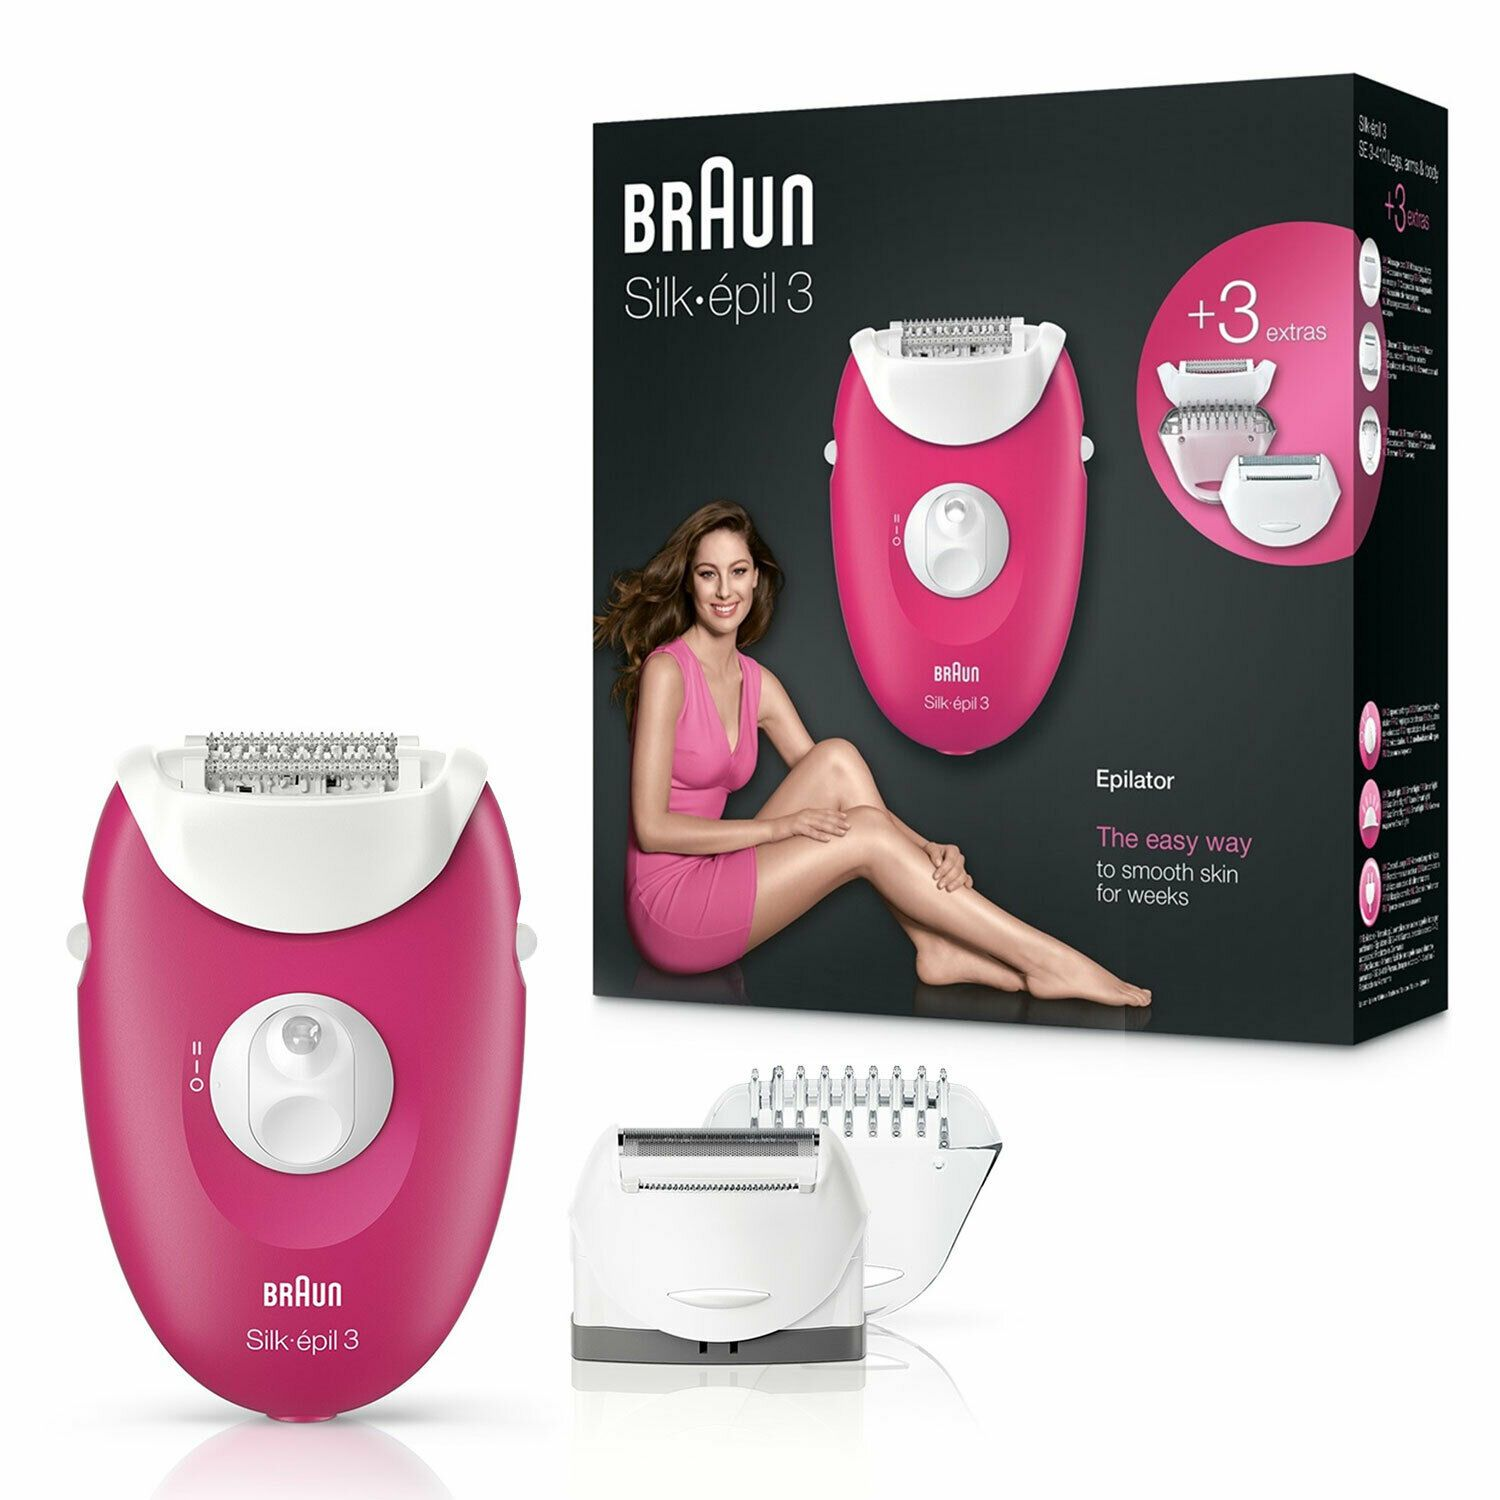 Braun Silk-épil 3 3-410 Raspberry Corded Epilator with 3 Extras (Raspberry Pink)